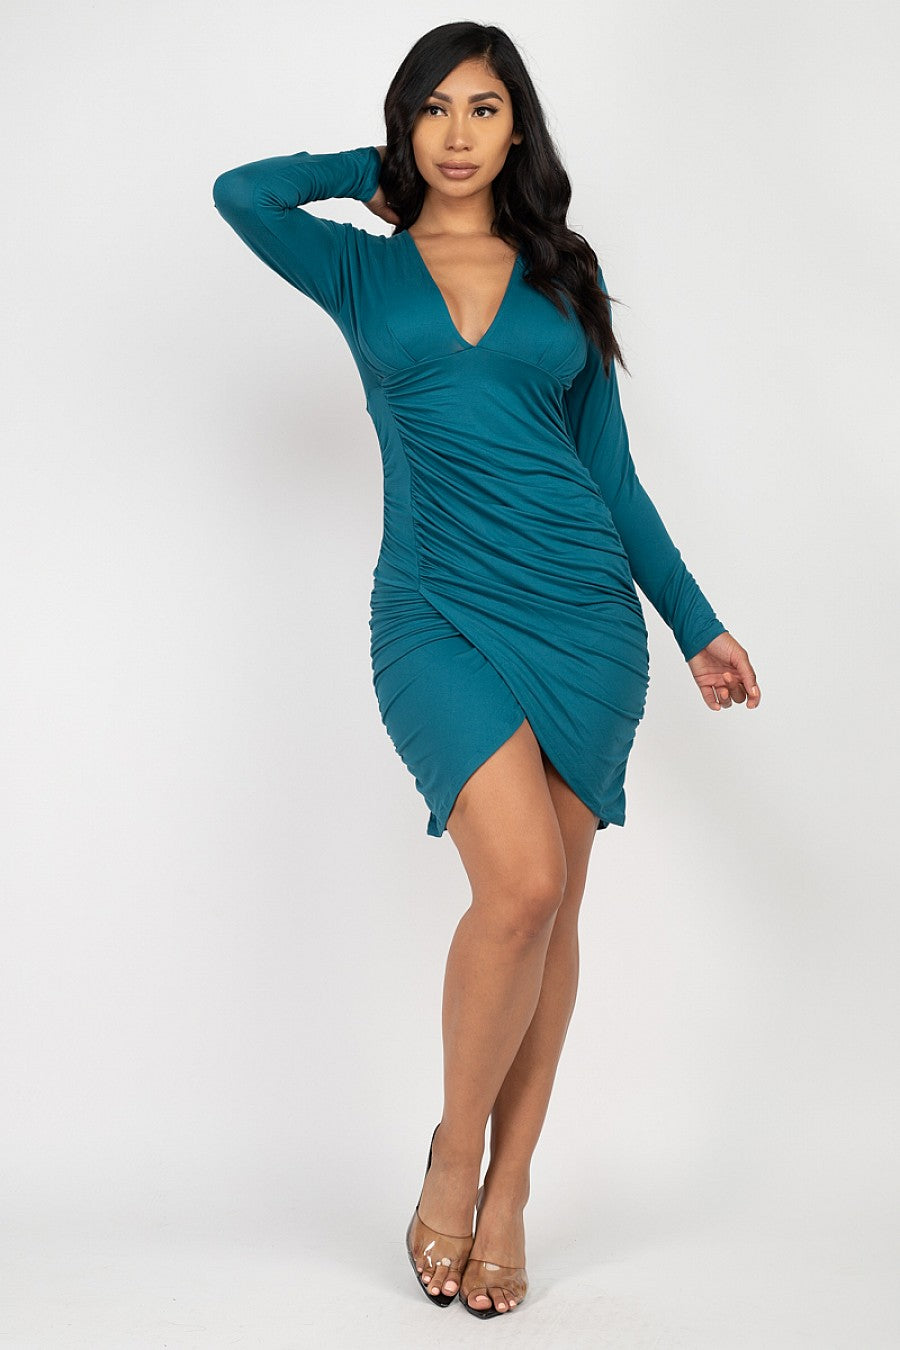 Bodycon dresse